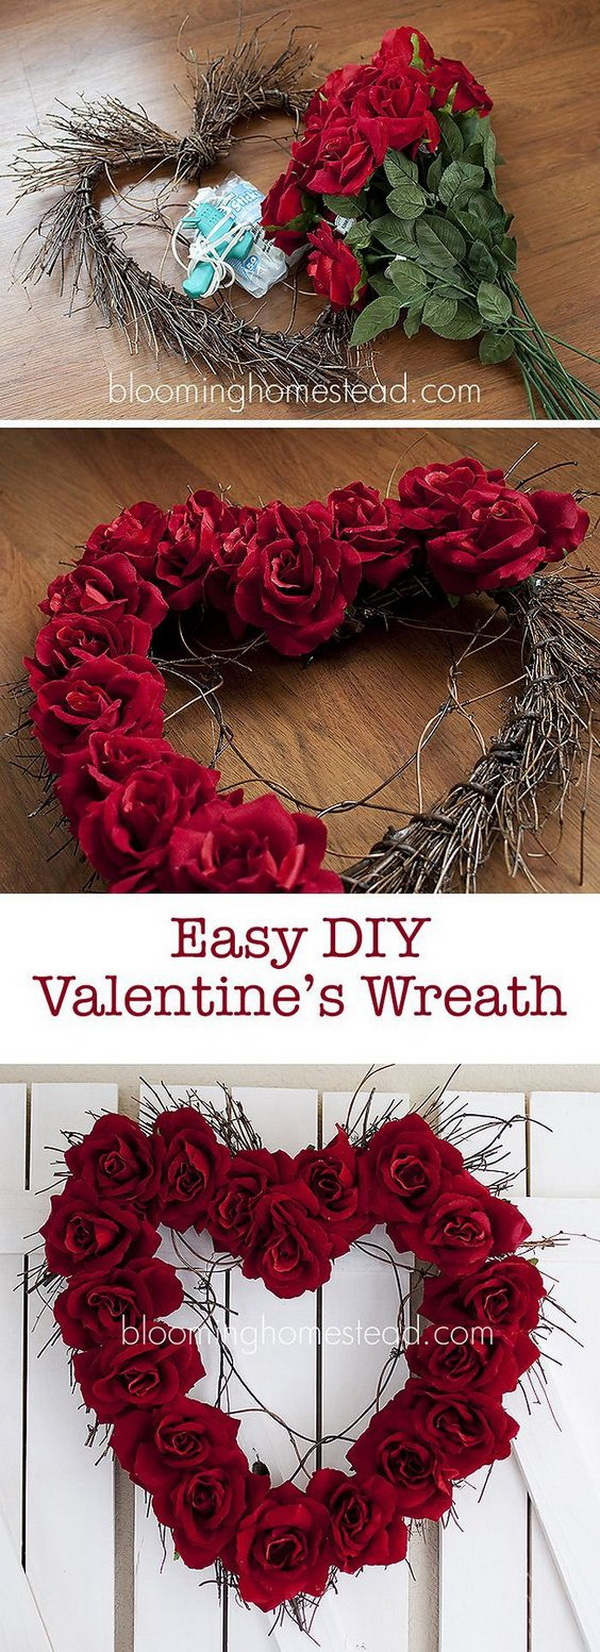 Easy DIY Valentine's Heart Wreath.